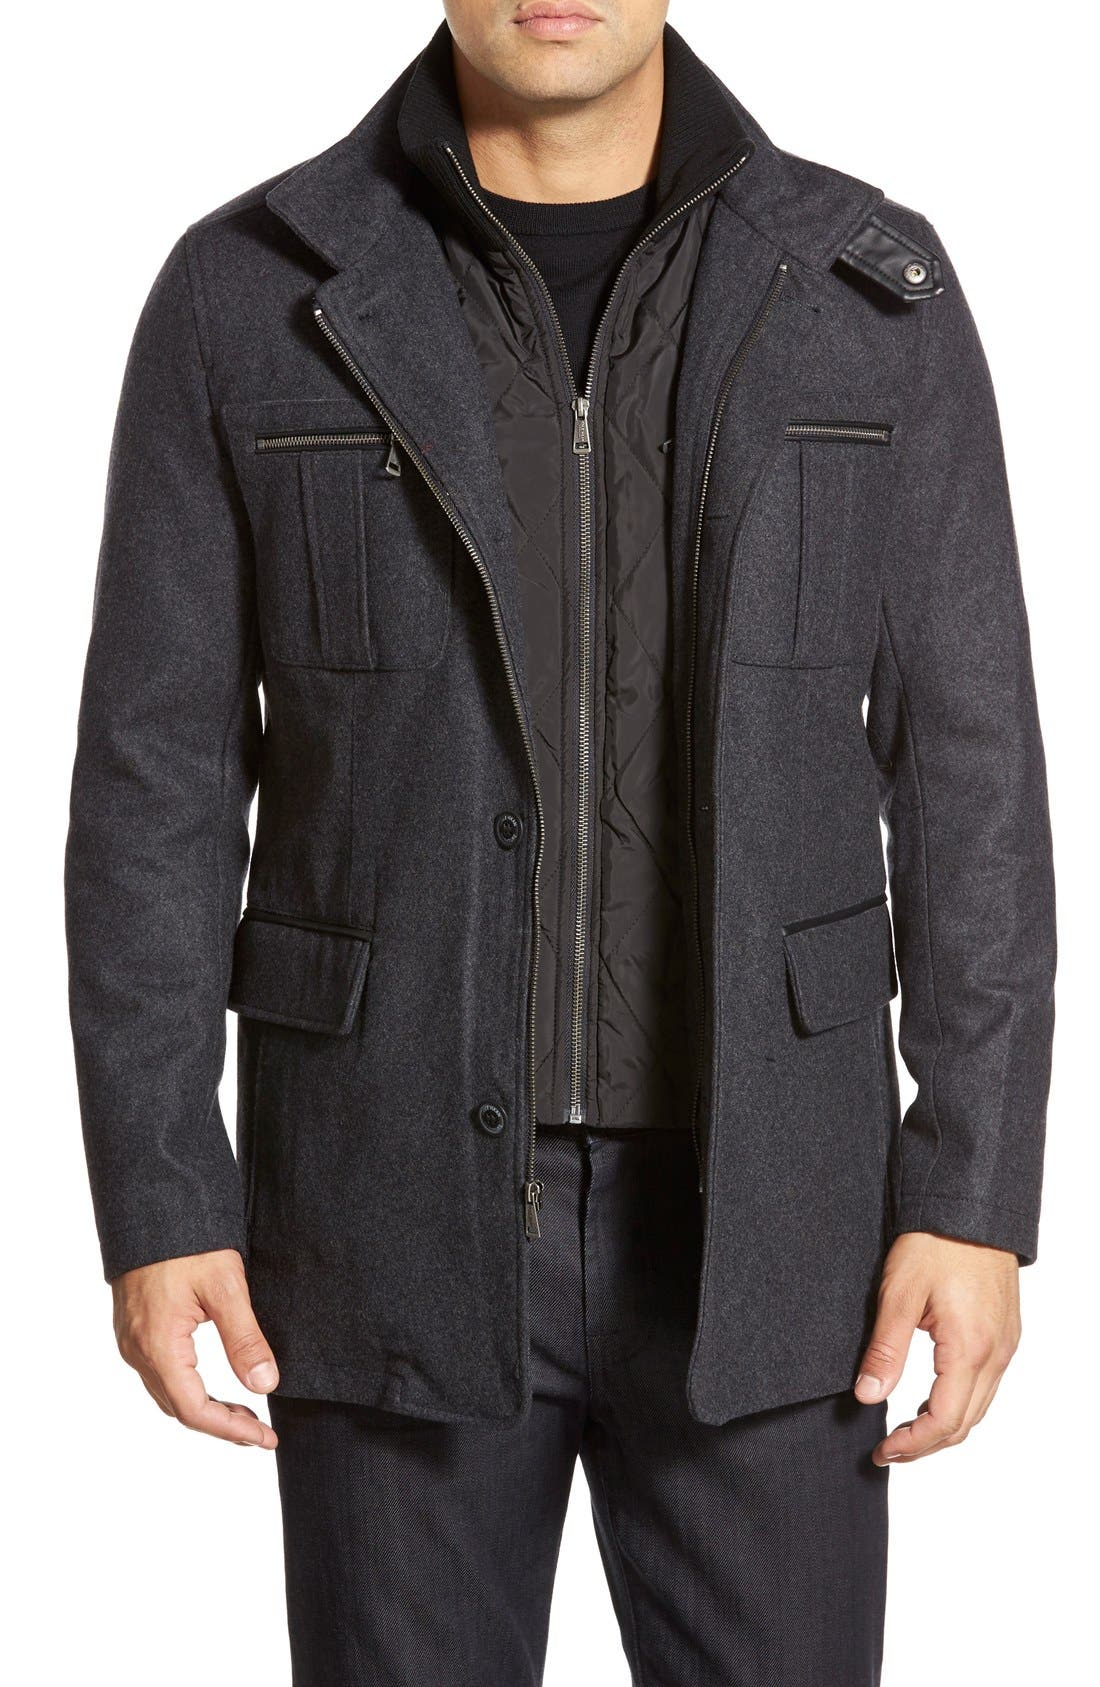 Alternate Image 1 Selected - Cole Haan Wool Blend Jacket